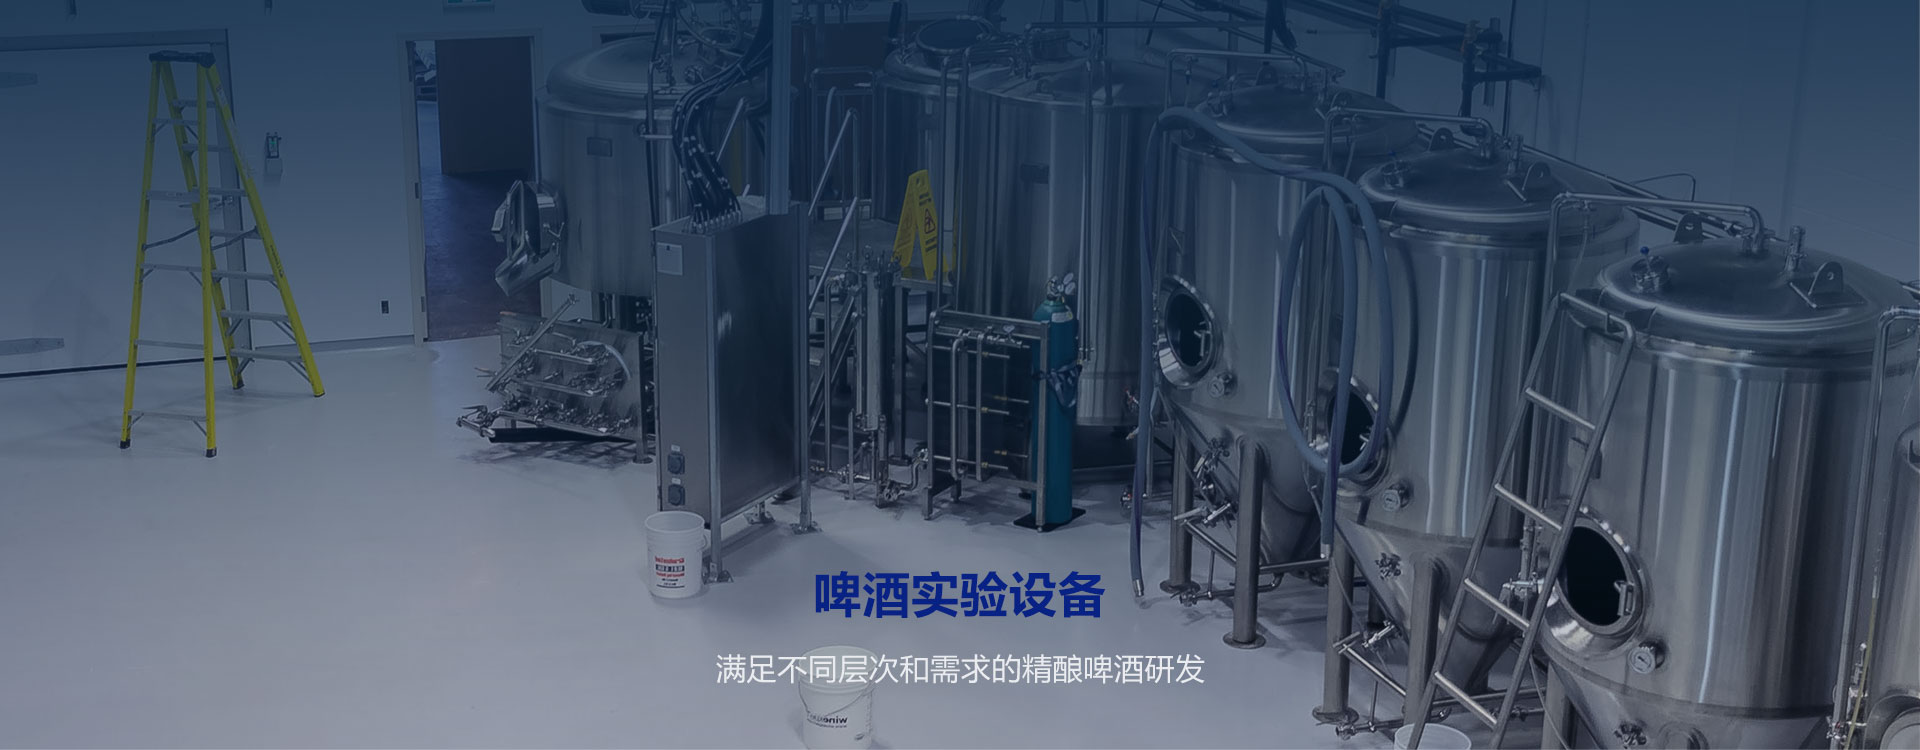 Yucheng Zeyu Machinery Co., Ltd.